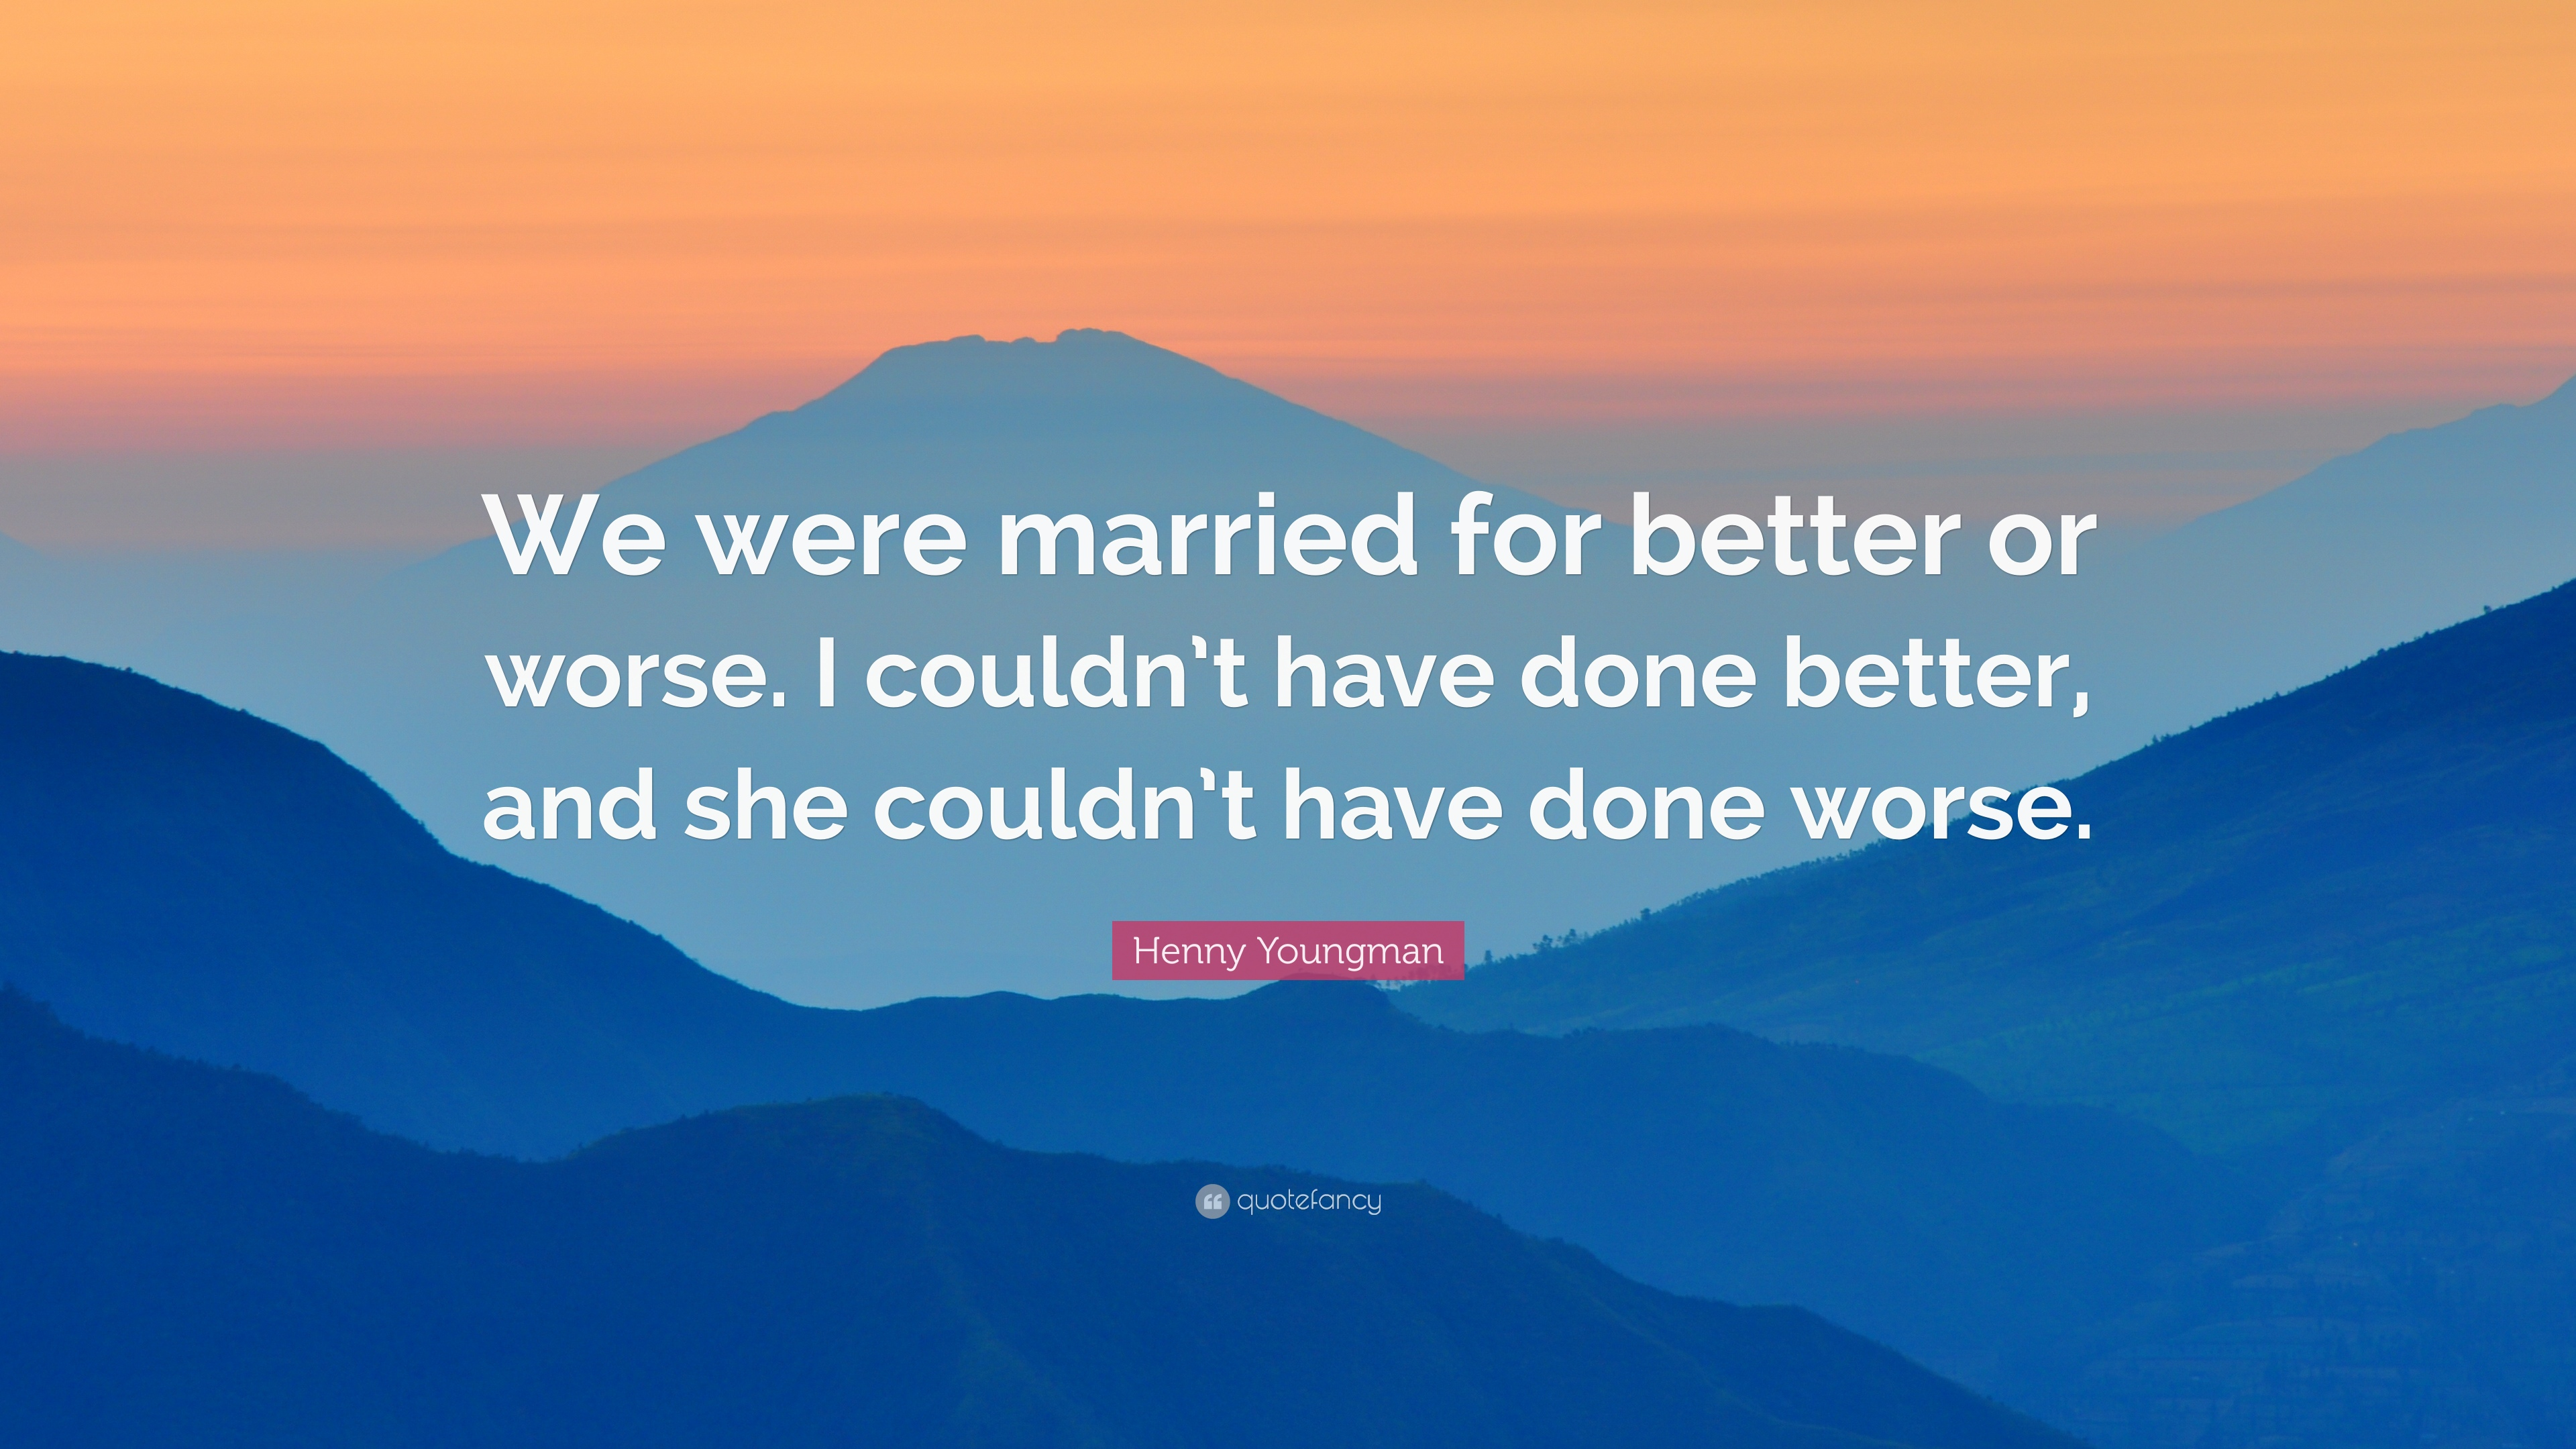 For Better, For Worse: Marriage Means Something Different Now essay